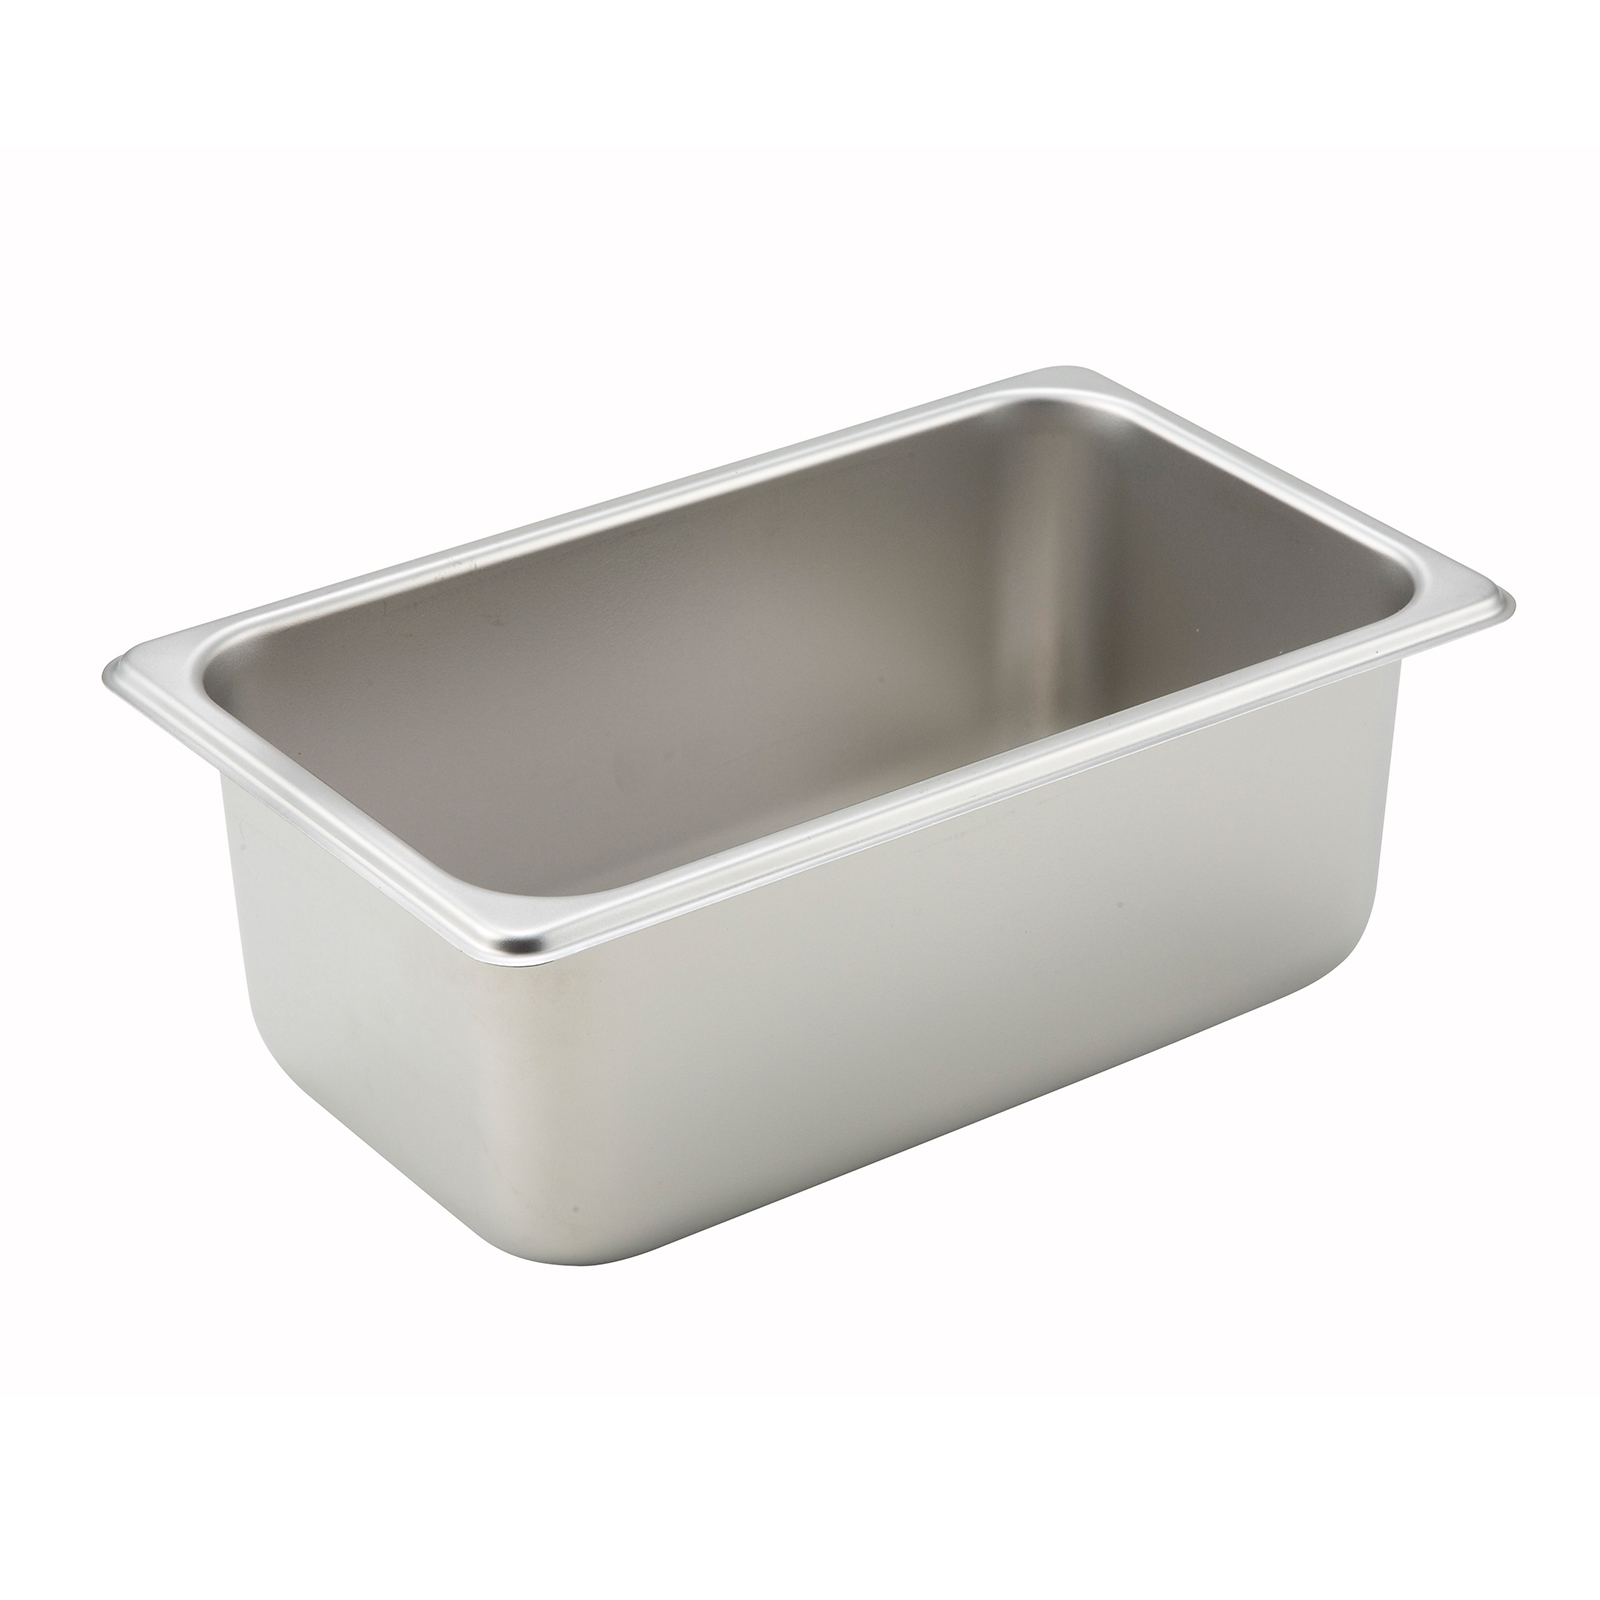 Winco SPQ4 steam table pan, stainless steel